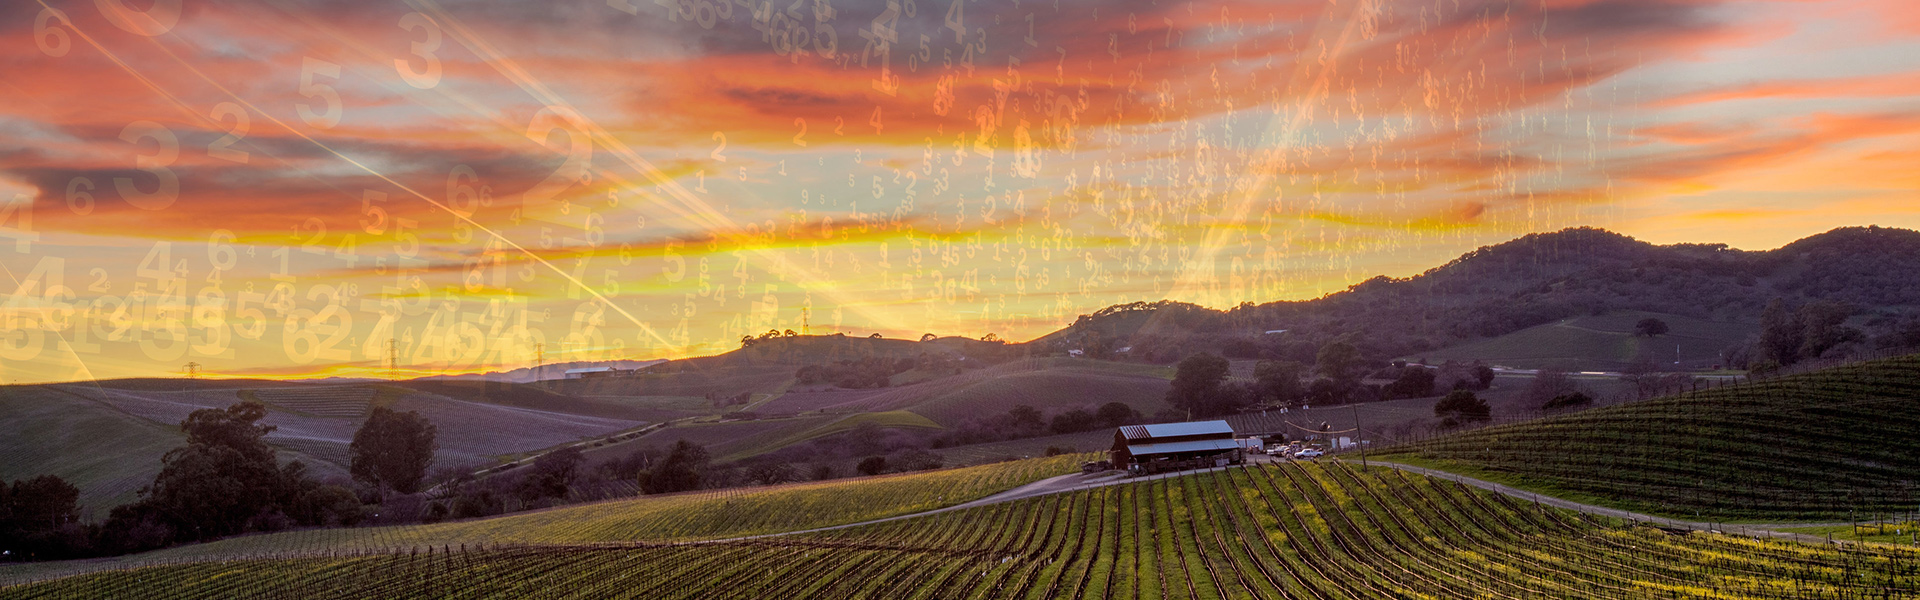 Winery Accounting Services In Napa Valley